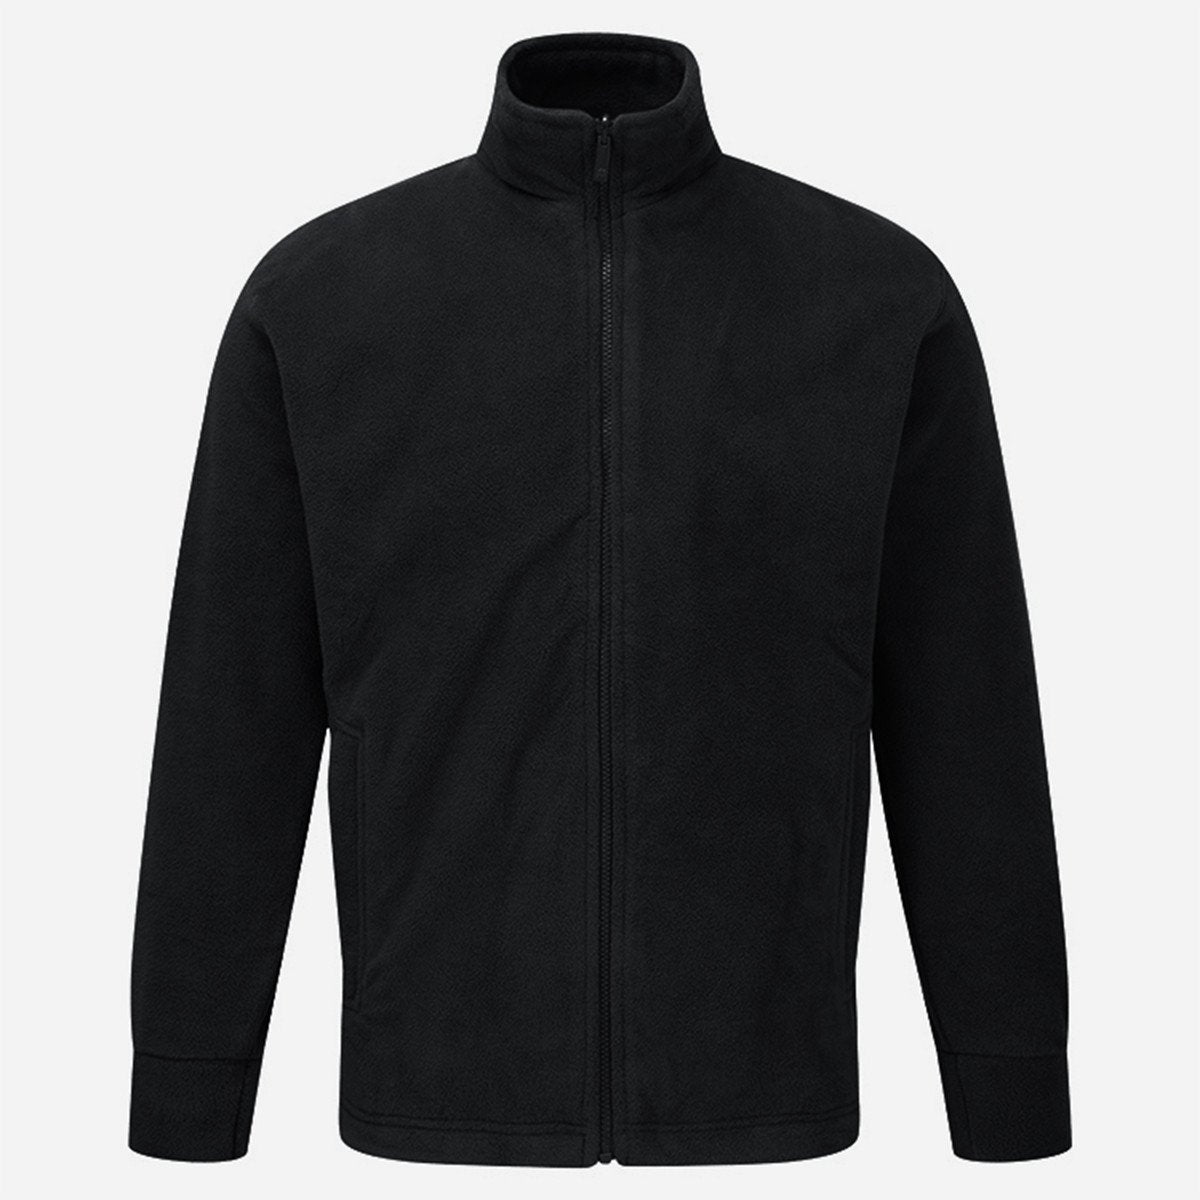 WR MTR Classic Long Sleeve Polar Fleece Jacket Men's Jacket WR MTR Black M